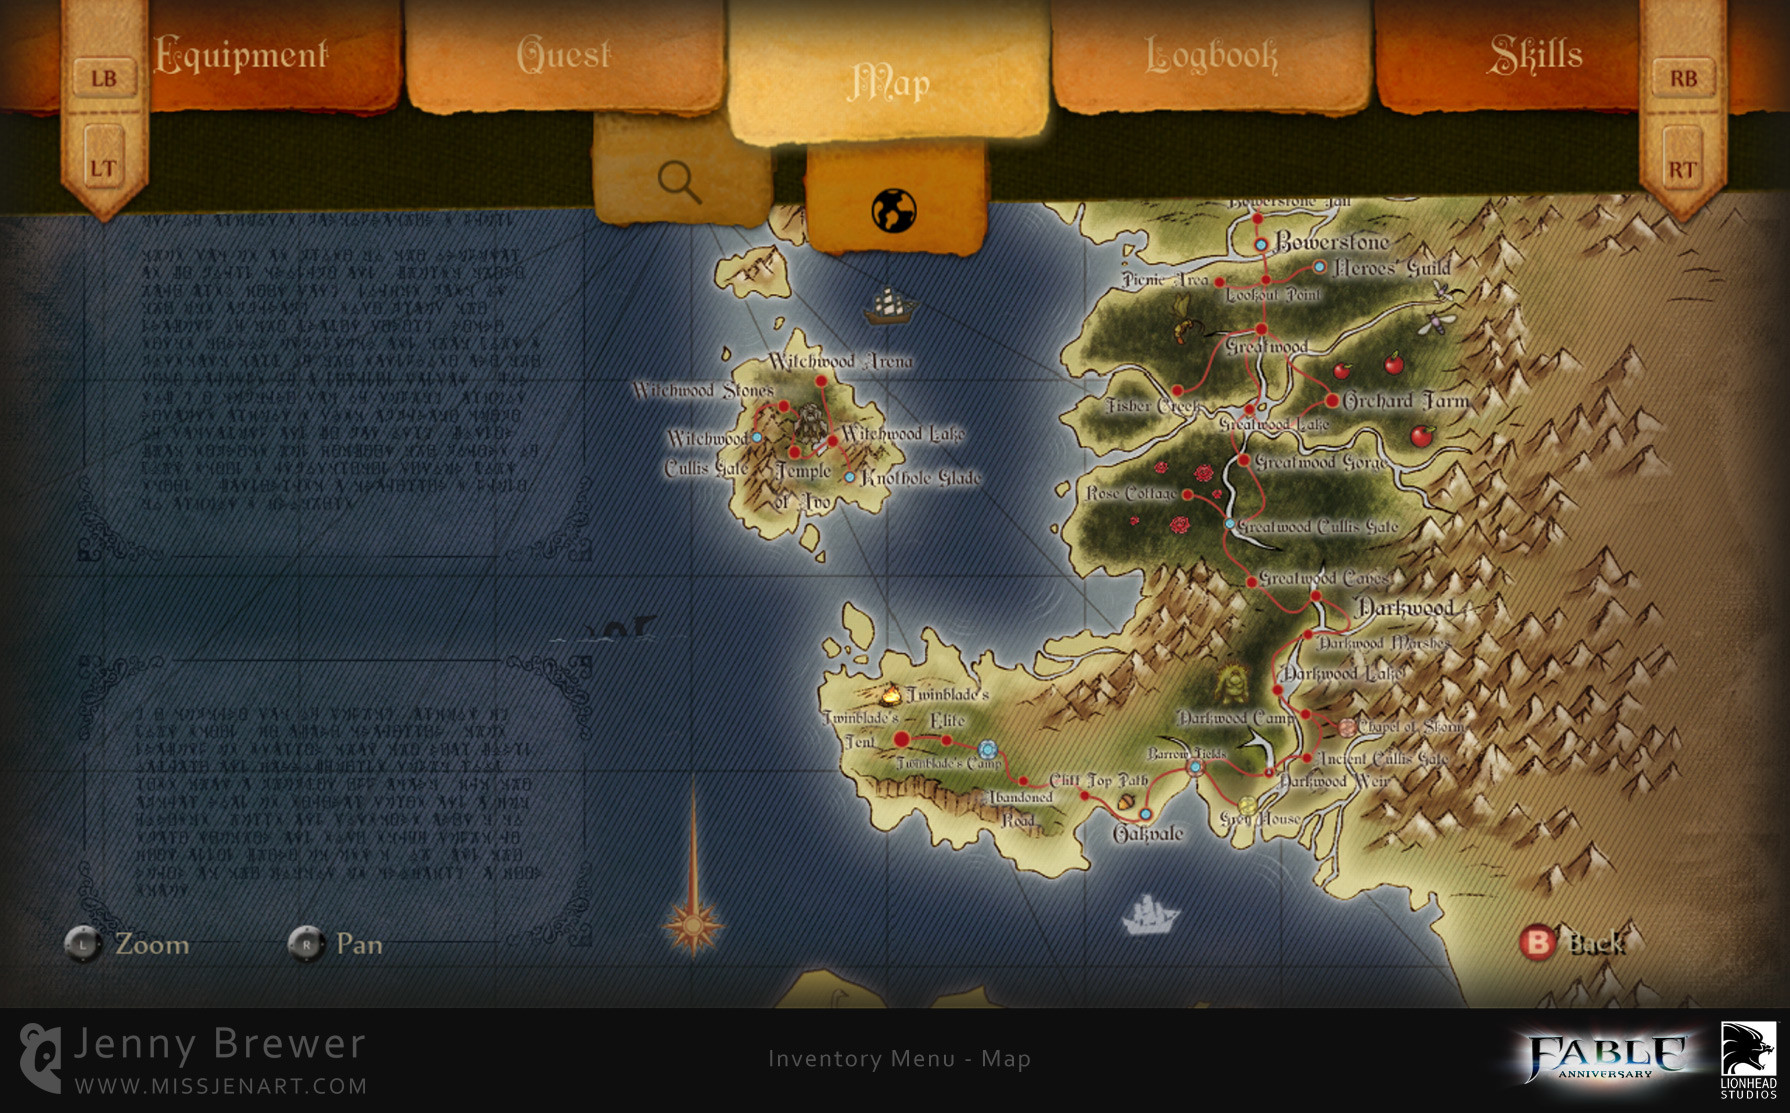 A new full screen world map view has also been added, allowing players to zoom in and pan around to explore every fine detail as well as utilising it for loading screens. It was important to me that the map should become more of a feature, animations and